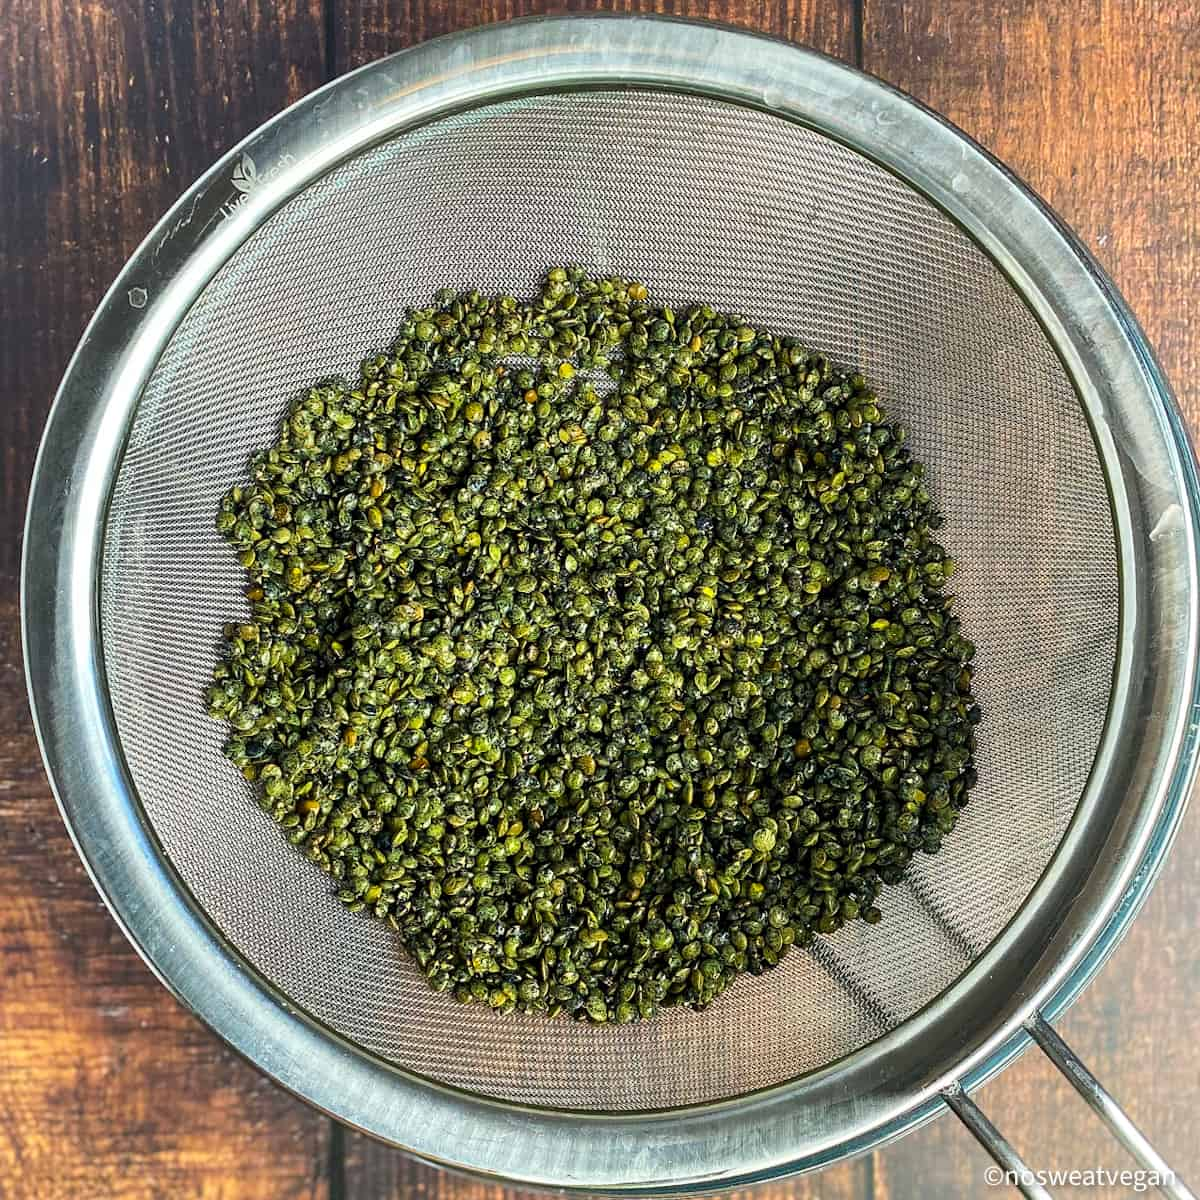 Dried green French lentils in a mesh strainer.